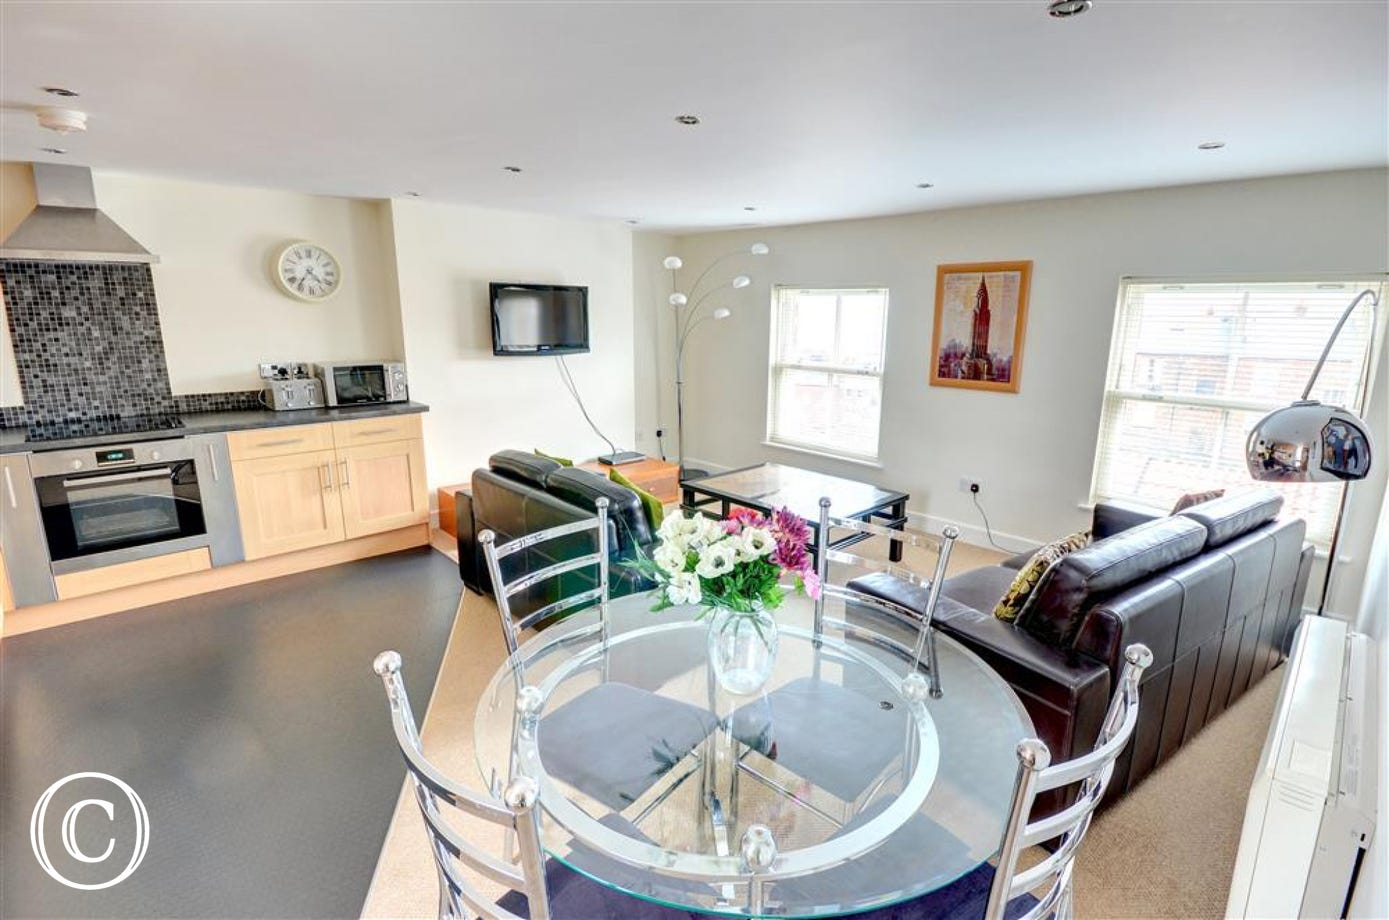 Stylish, open plan Kitchen and Dining Area adjoined to the Lounge.